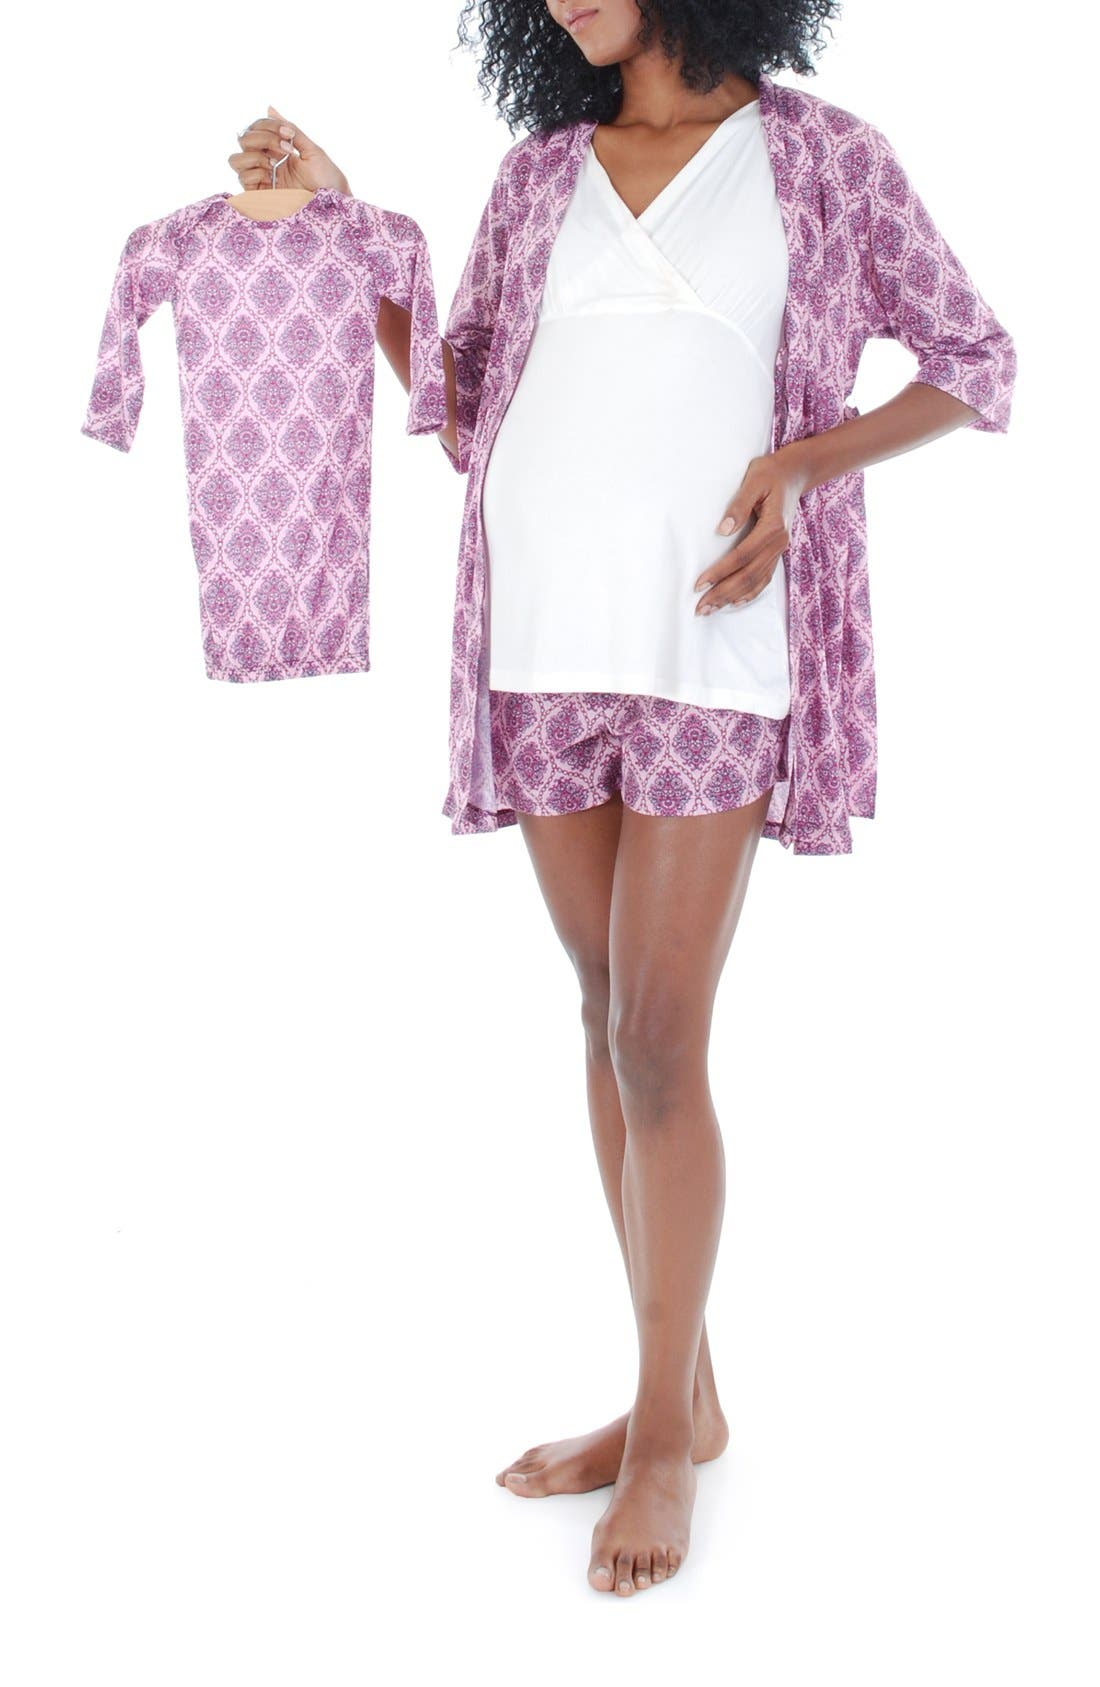 Alternate Image 1 Selected - Everly Grey 'Daphne - During & After' 5-Piece Maternity Sleepwear Set